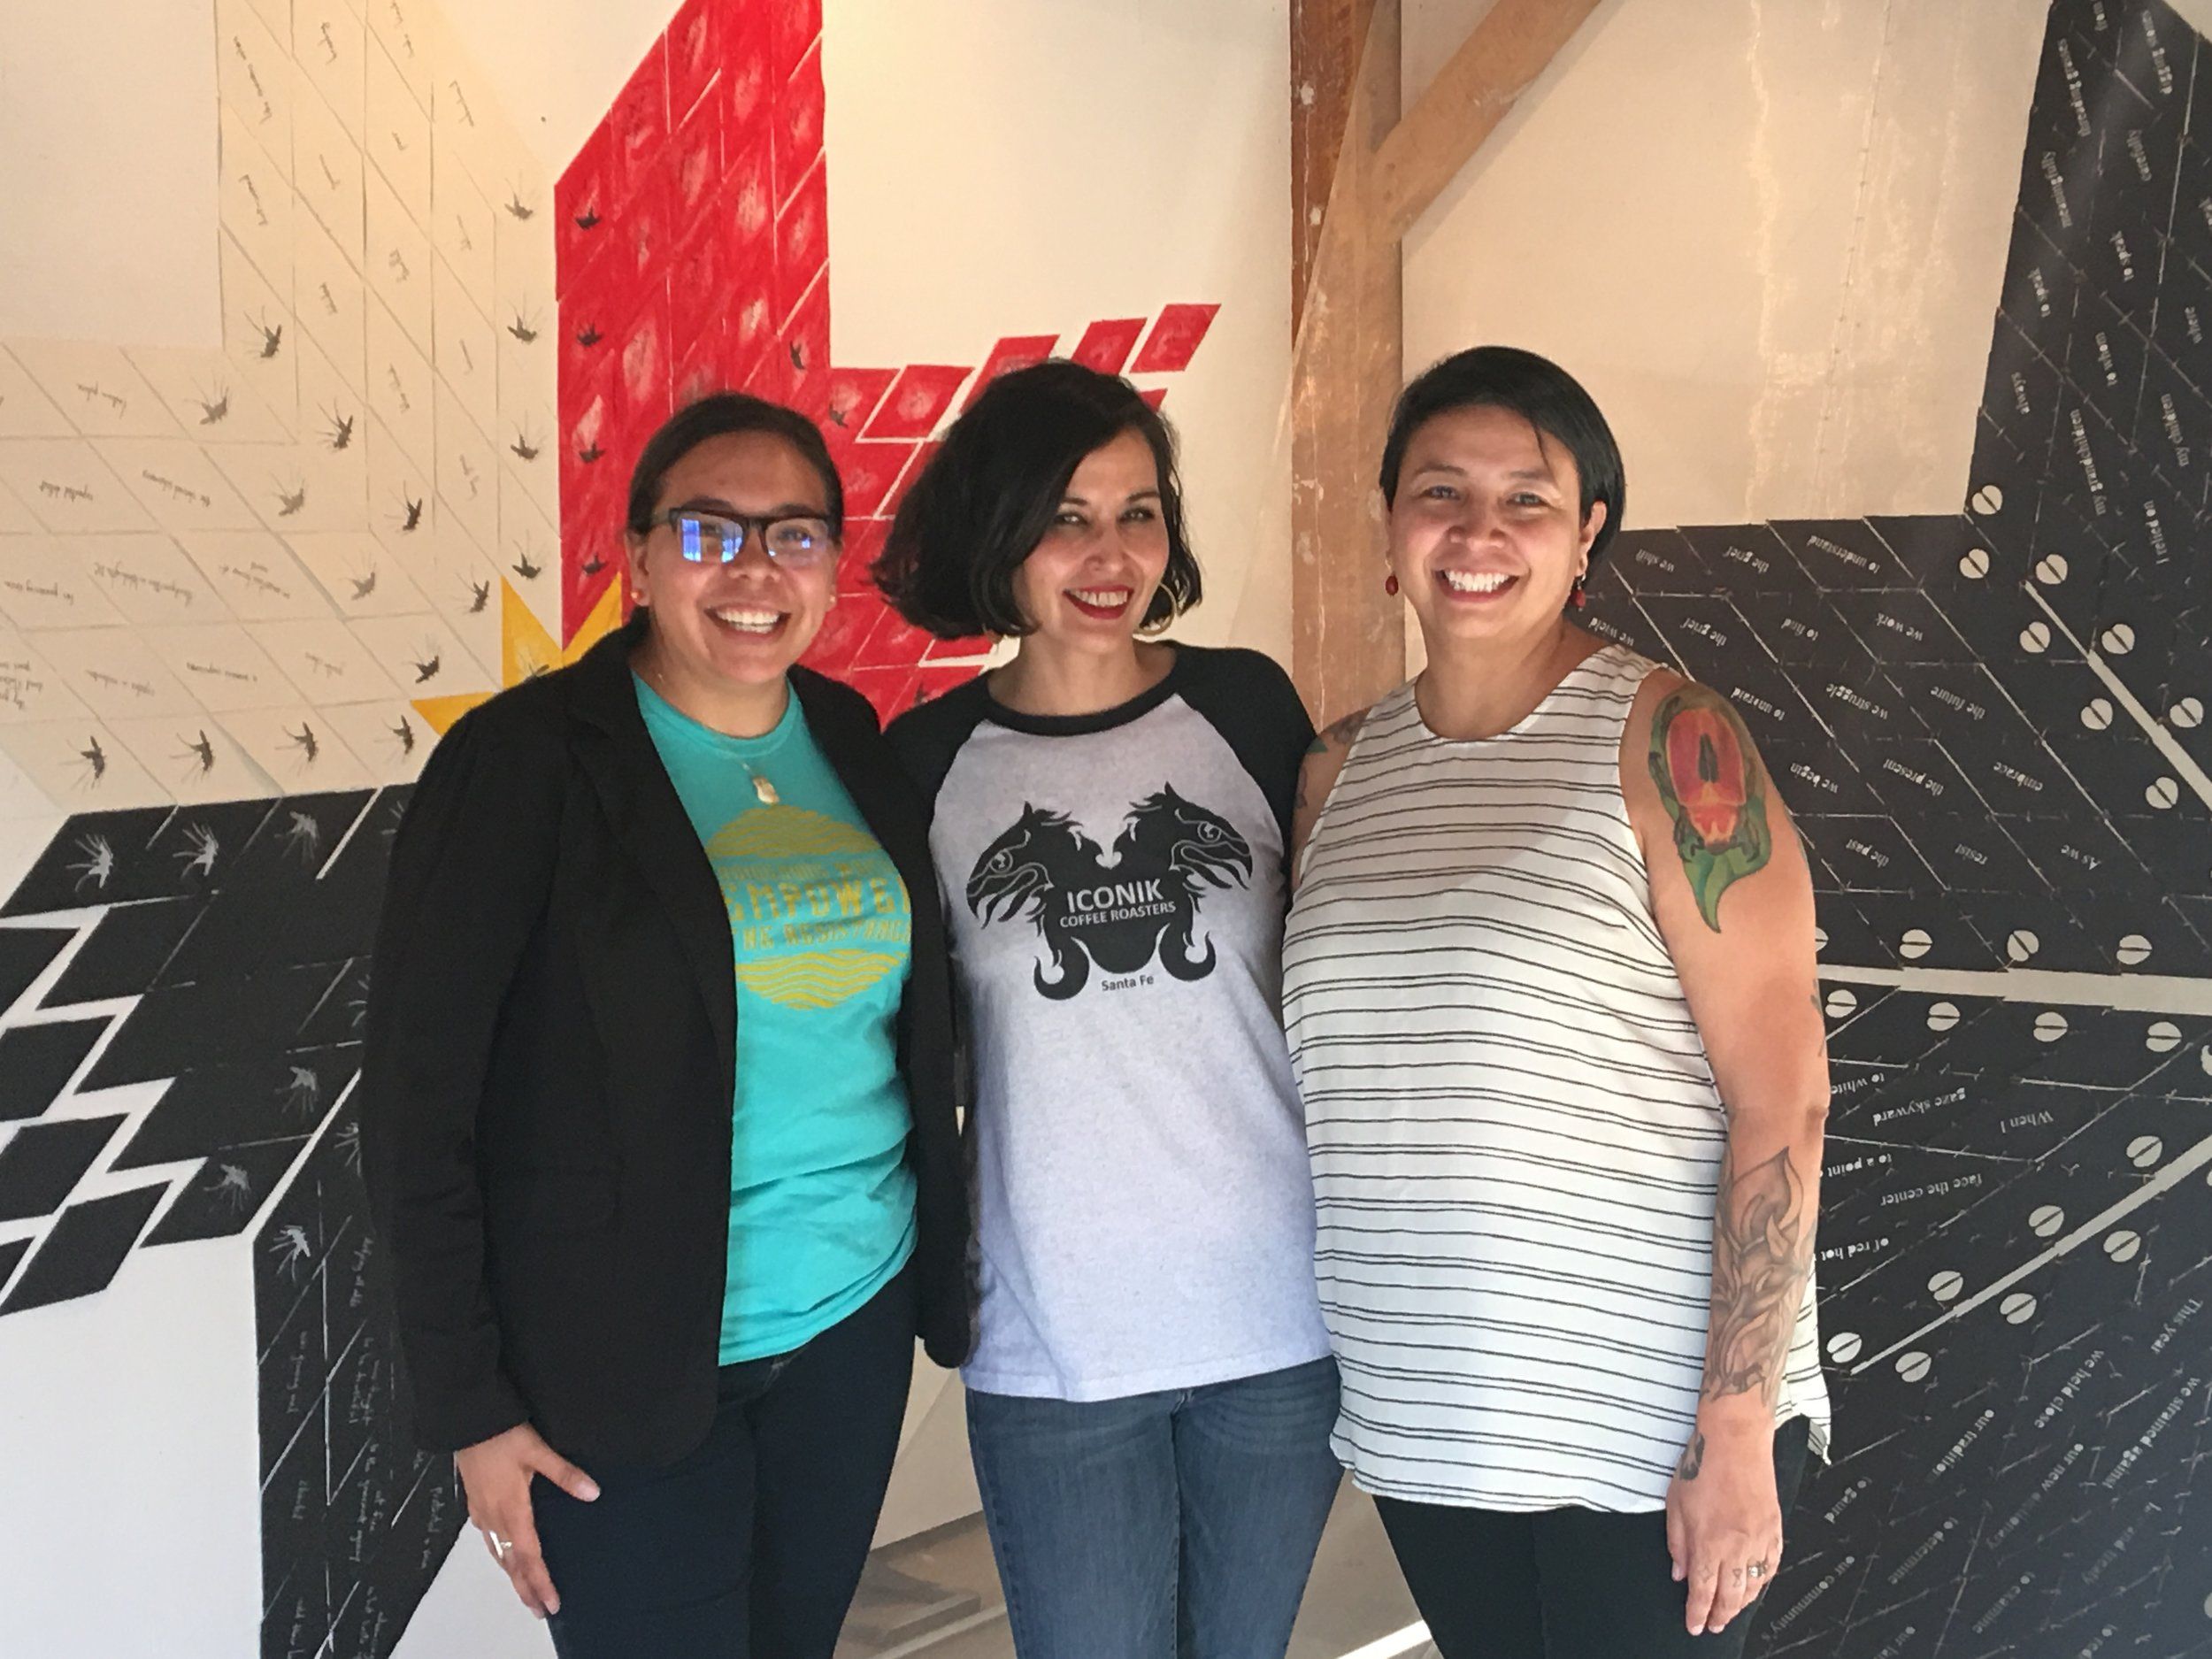 Curators of the Exhibition: (L to R) Clementine Bordeaux, Layli Long Soldier, and Mary V. Bordeaux